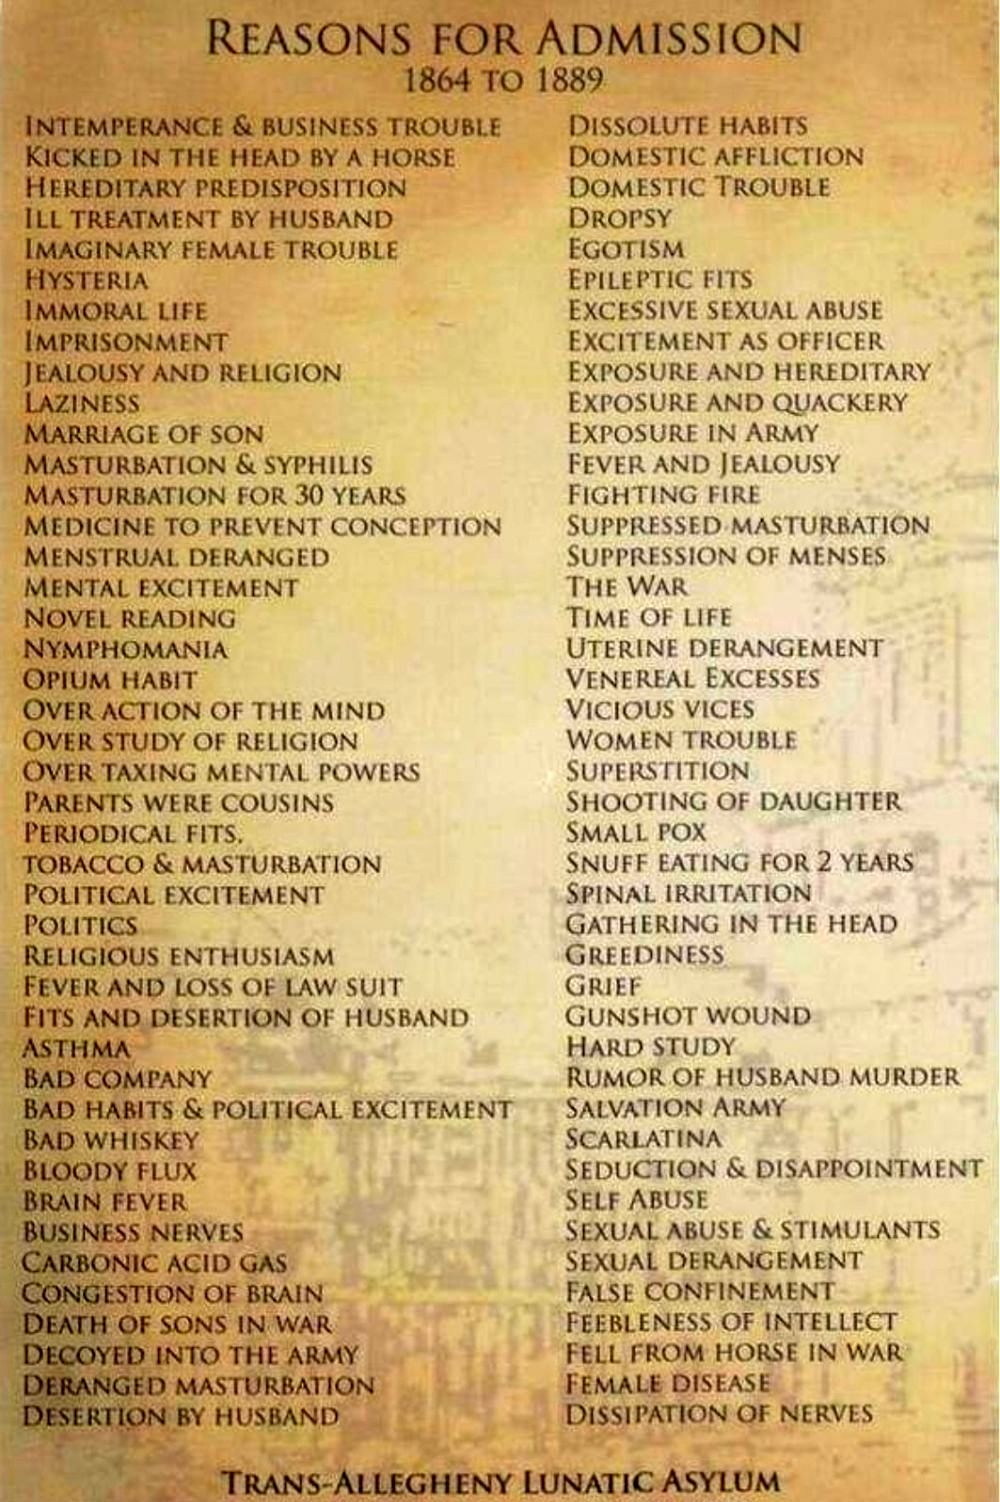 reasons-admission-insane-asylum-1800s (1).jpg